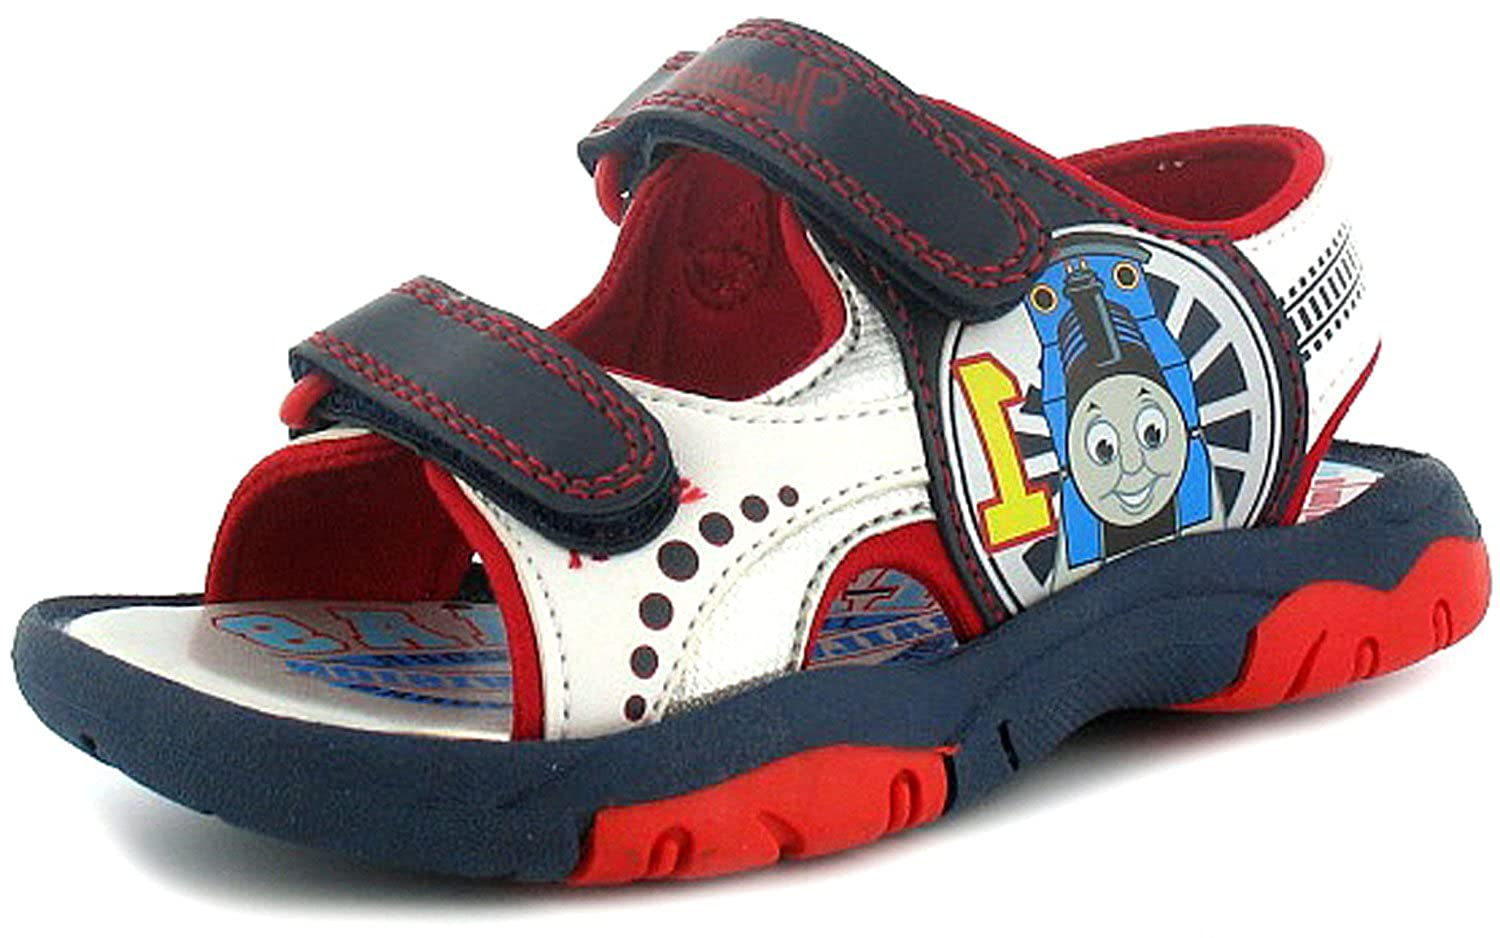 6ca0aca17bd553 New Boys Childrens Navy Multi Velcro Fastening Thomas Tank Sandals -  Navy White Red - UK SIZE 10  Amazon.co.uk  Shoes   Bags